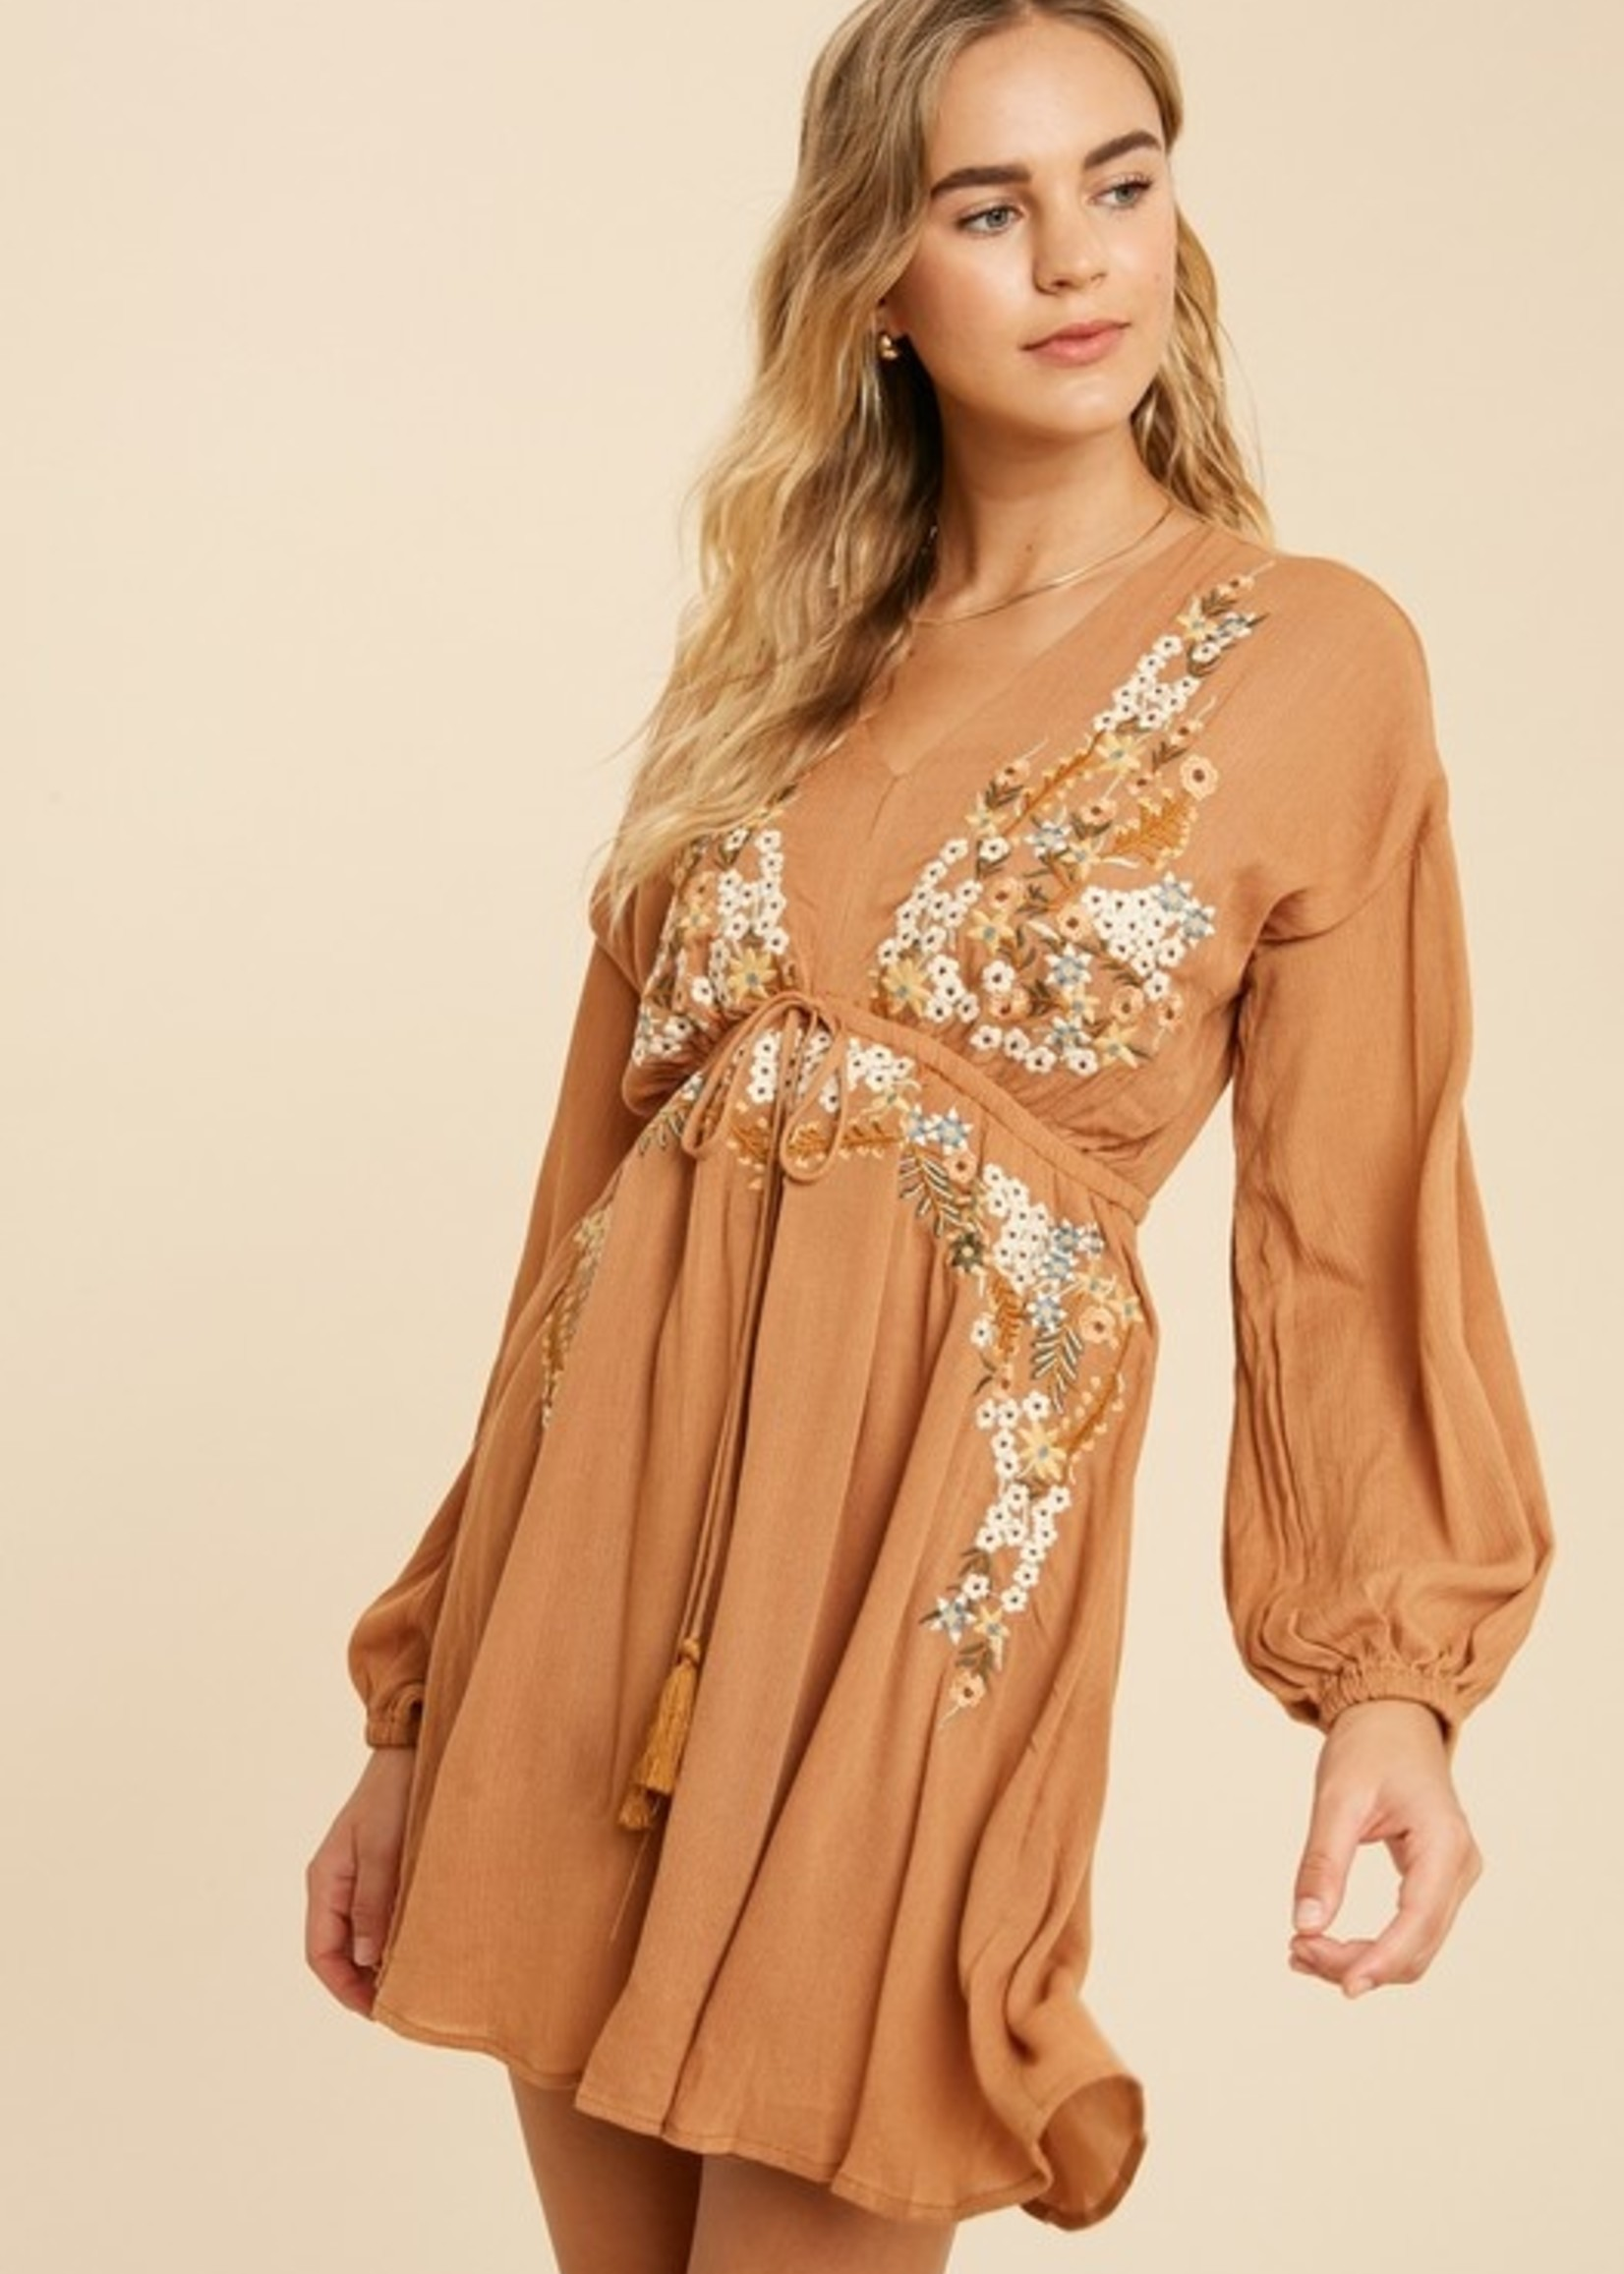 Floral Embroidered Dress - Rust